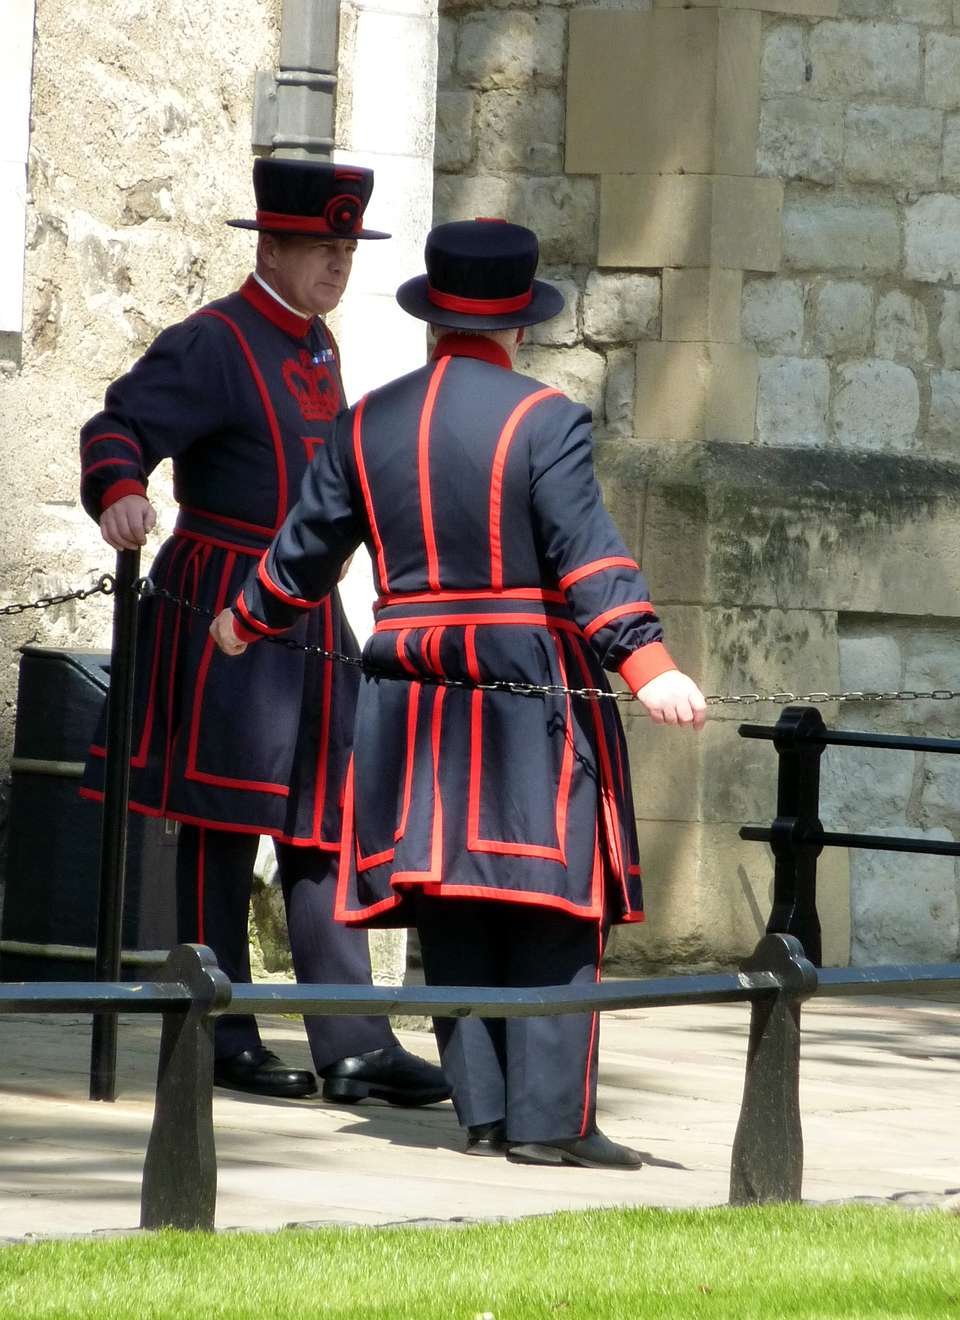 Yeoman Warders at the Tower of London